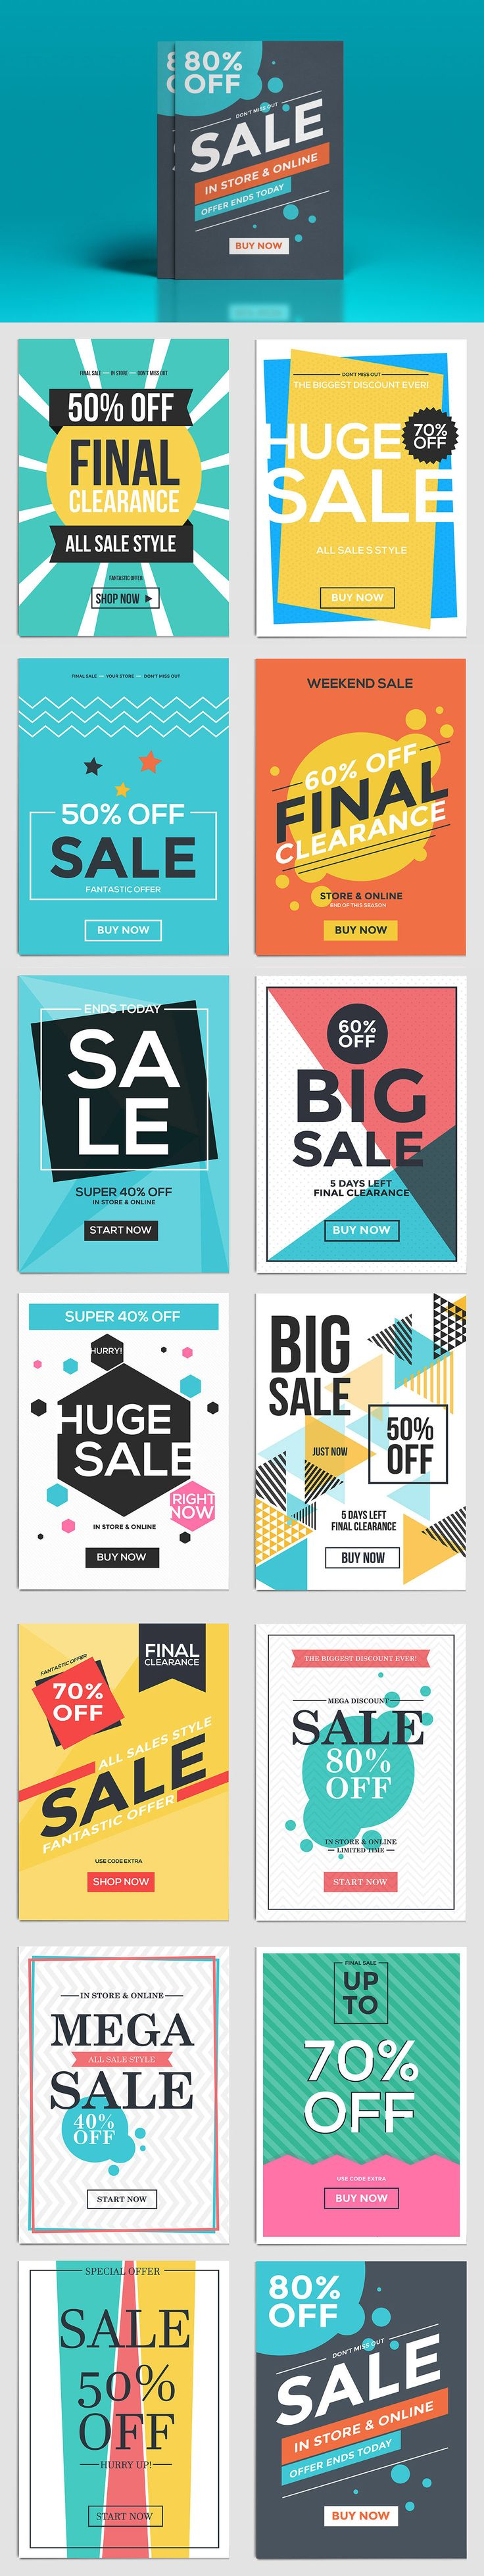 best ideas about flyer design graphic design flat design flyer template ai eps